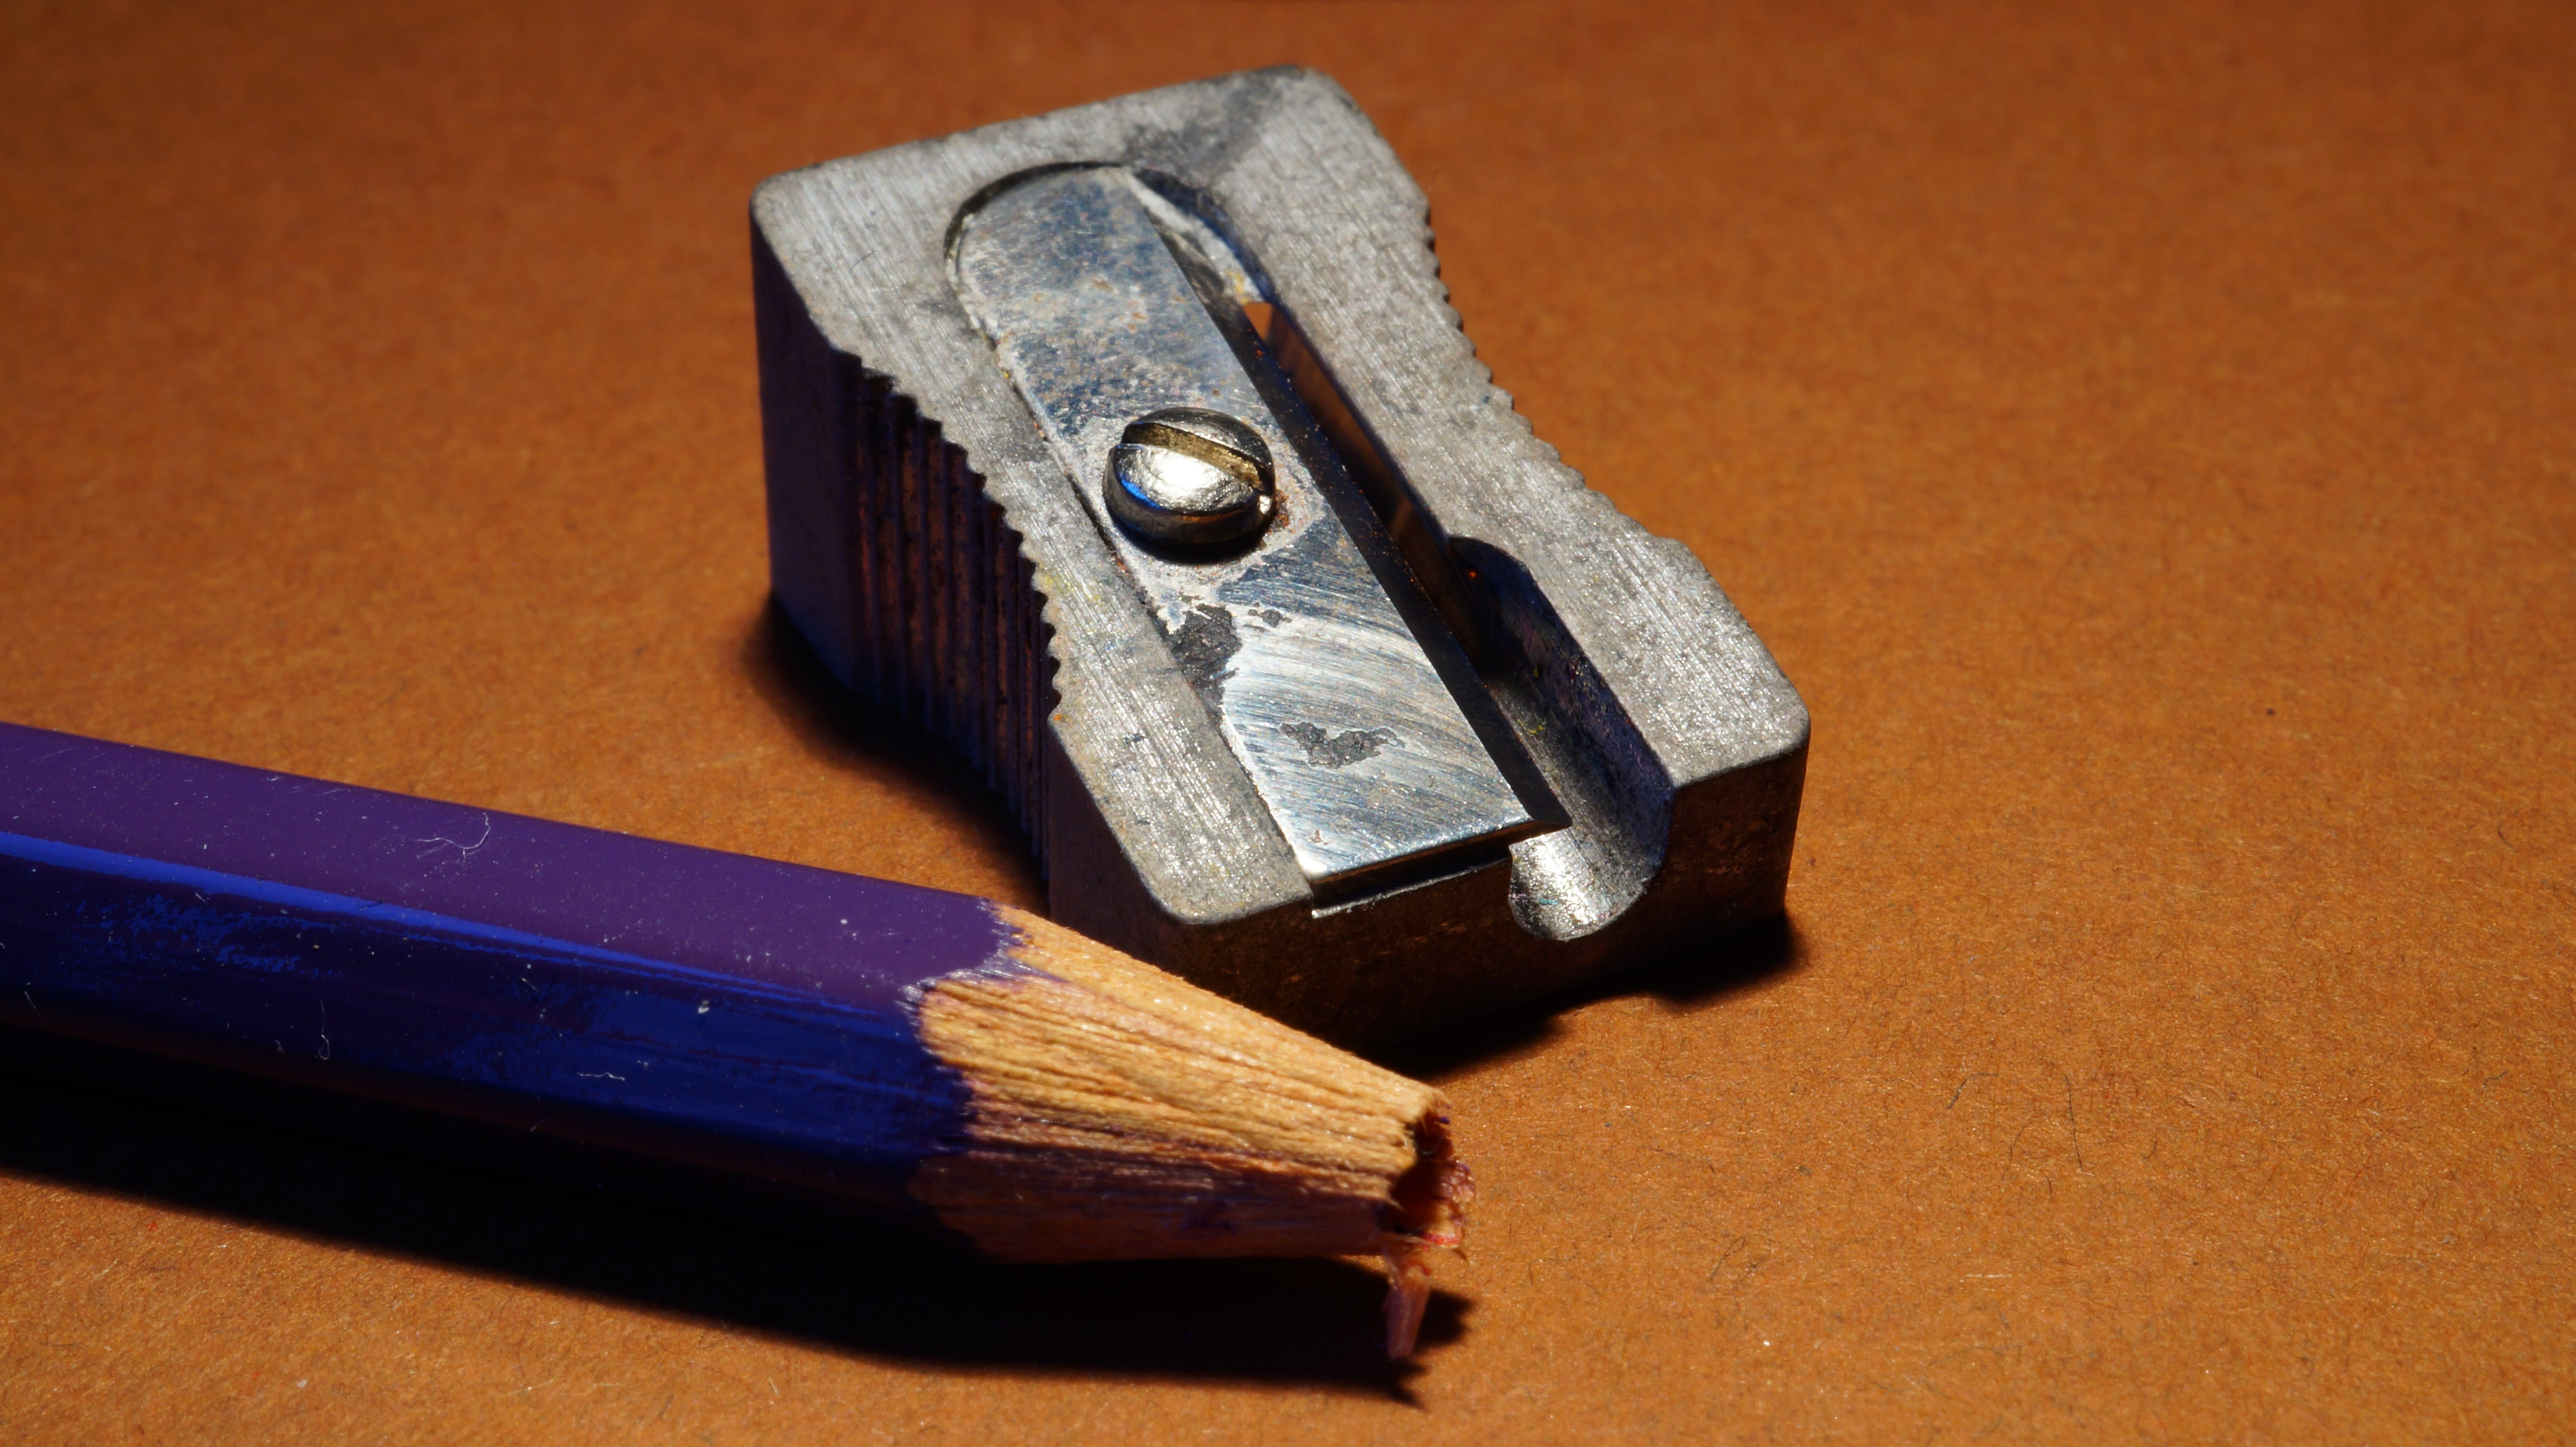 Blue Pencil Beside Gray Sharpener on Brown Surface